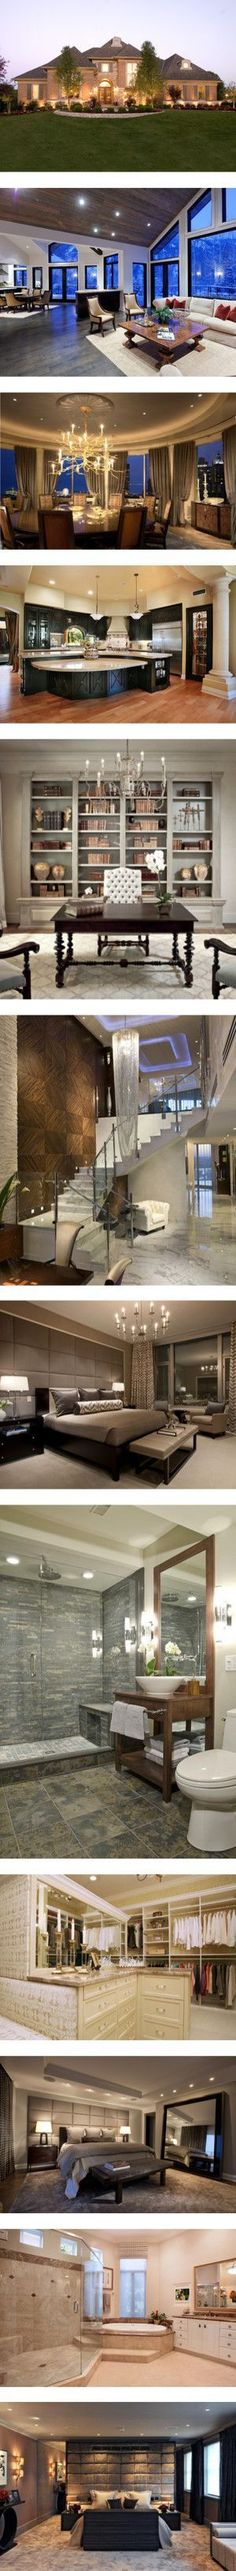 """""""House ....."""" by mariamoore-1 ❤ liked on Polyvore"""